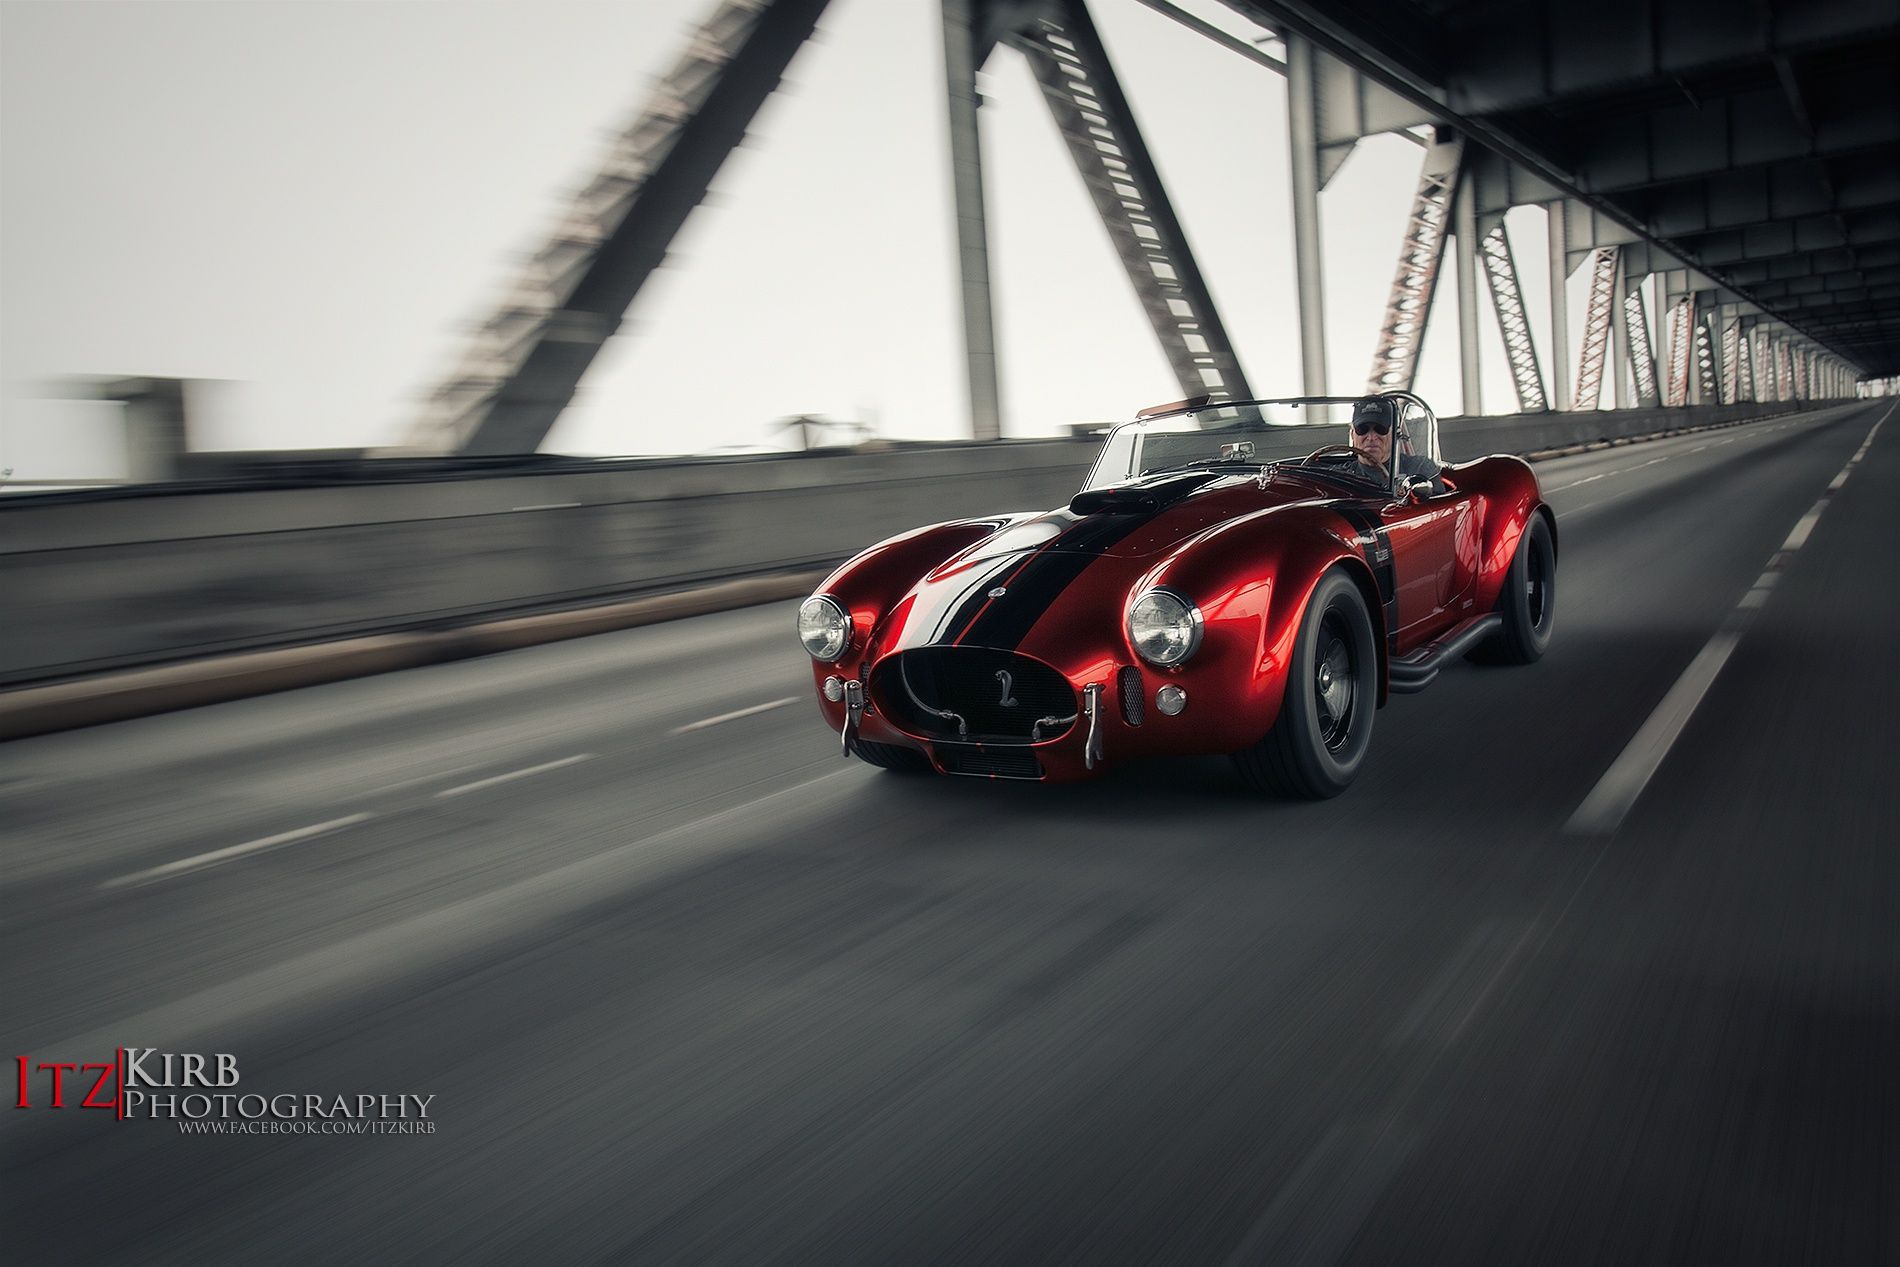 Superformance Cobra by Itzkirb Photography on 500px